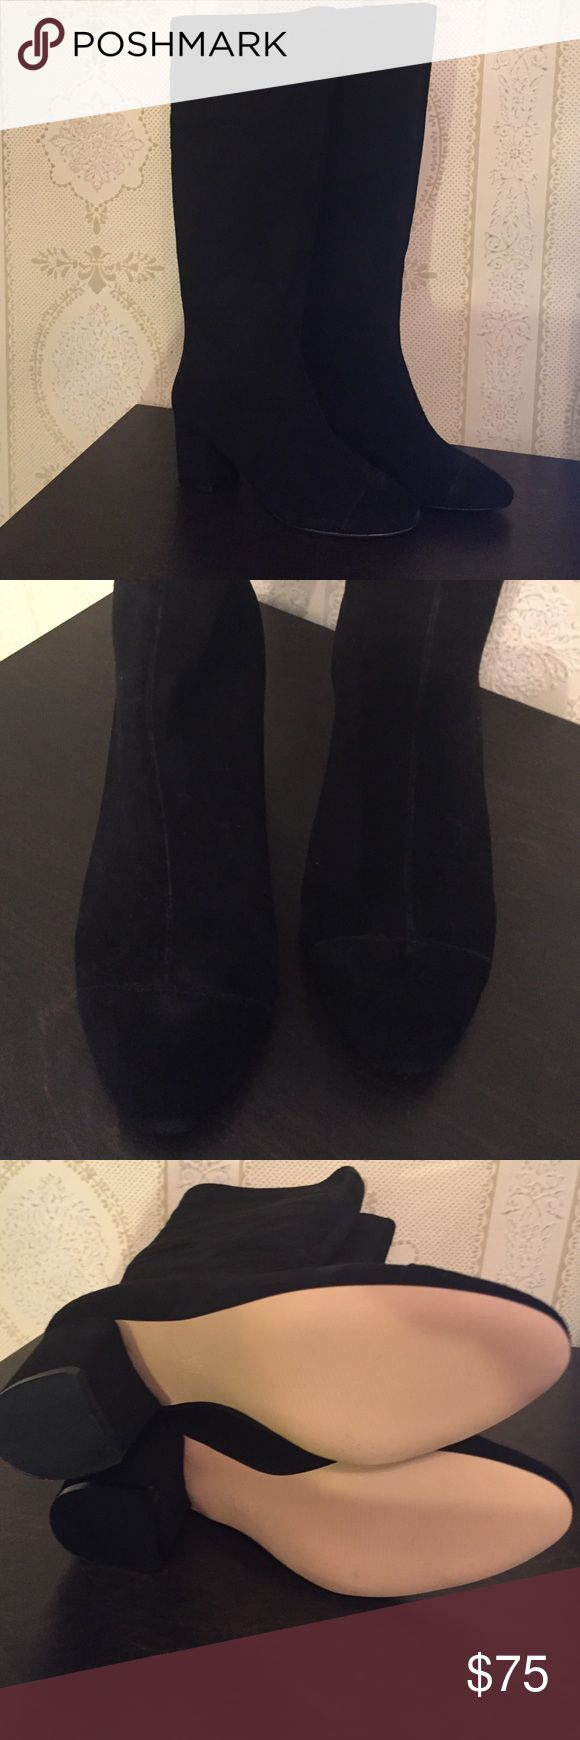 Gap knee high suede like black boots. NWT Size 7 zip up back. 2.5 inch heel. NWT GAP Shoes Heeled Boots